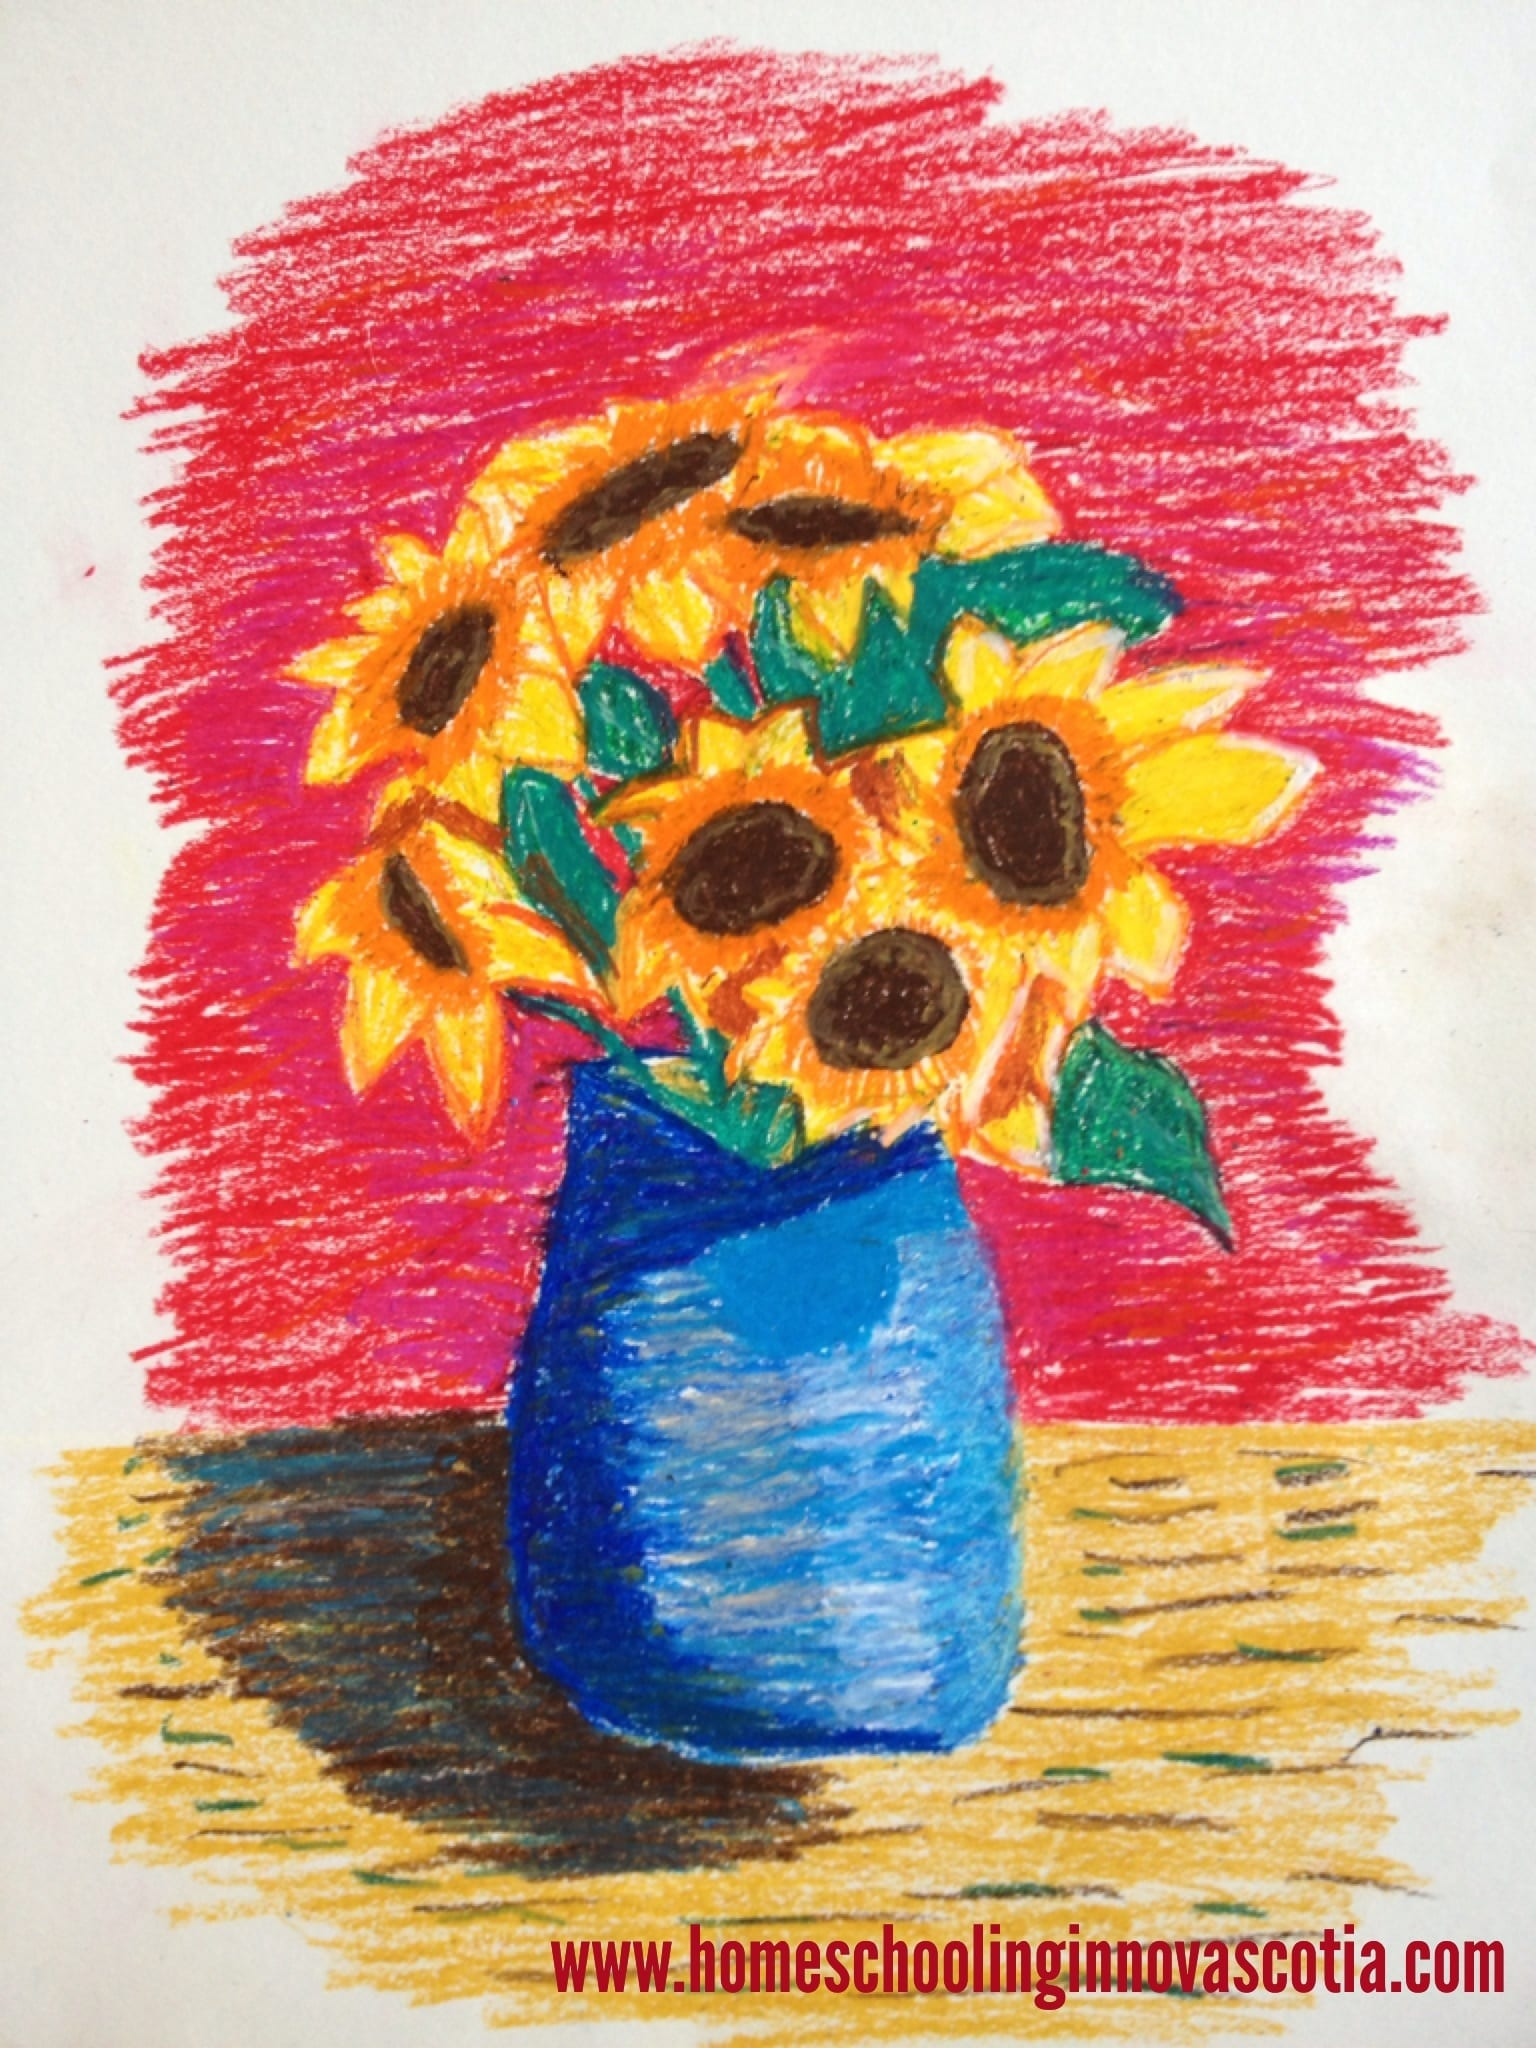 My 9 year old's sunflower creation